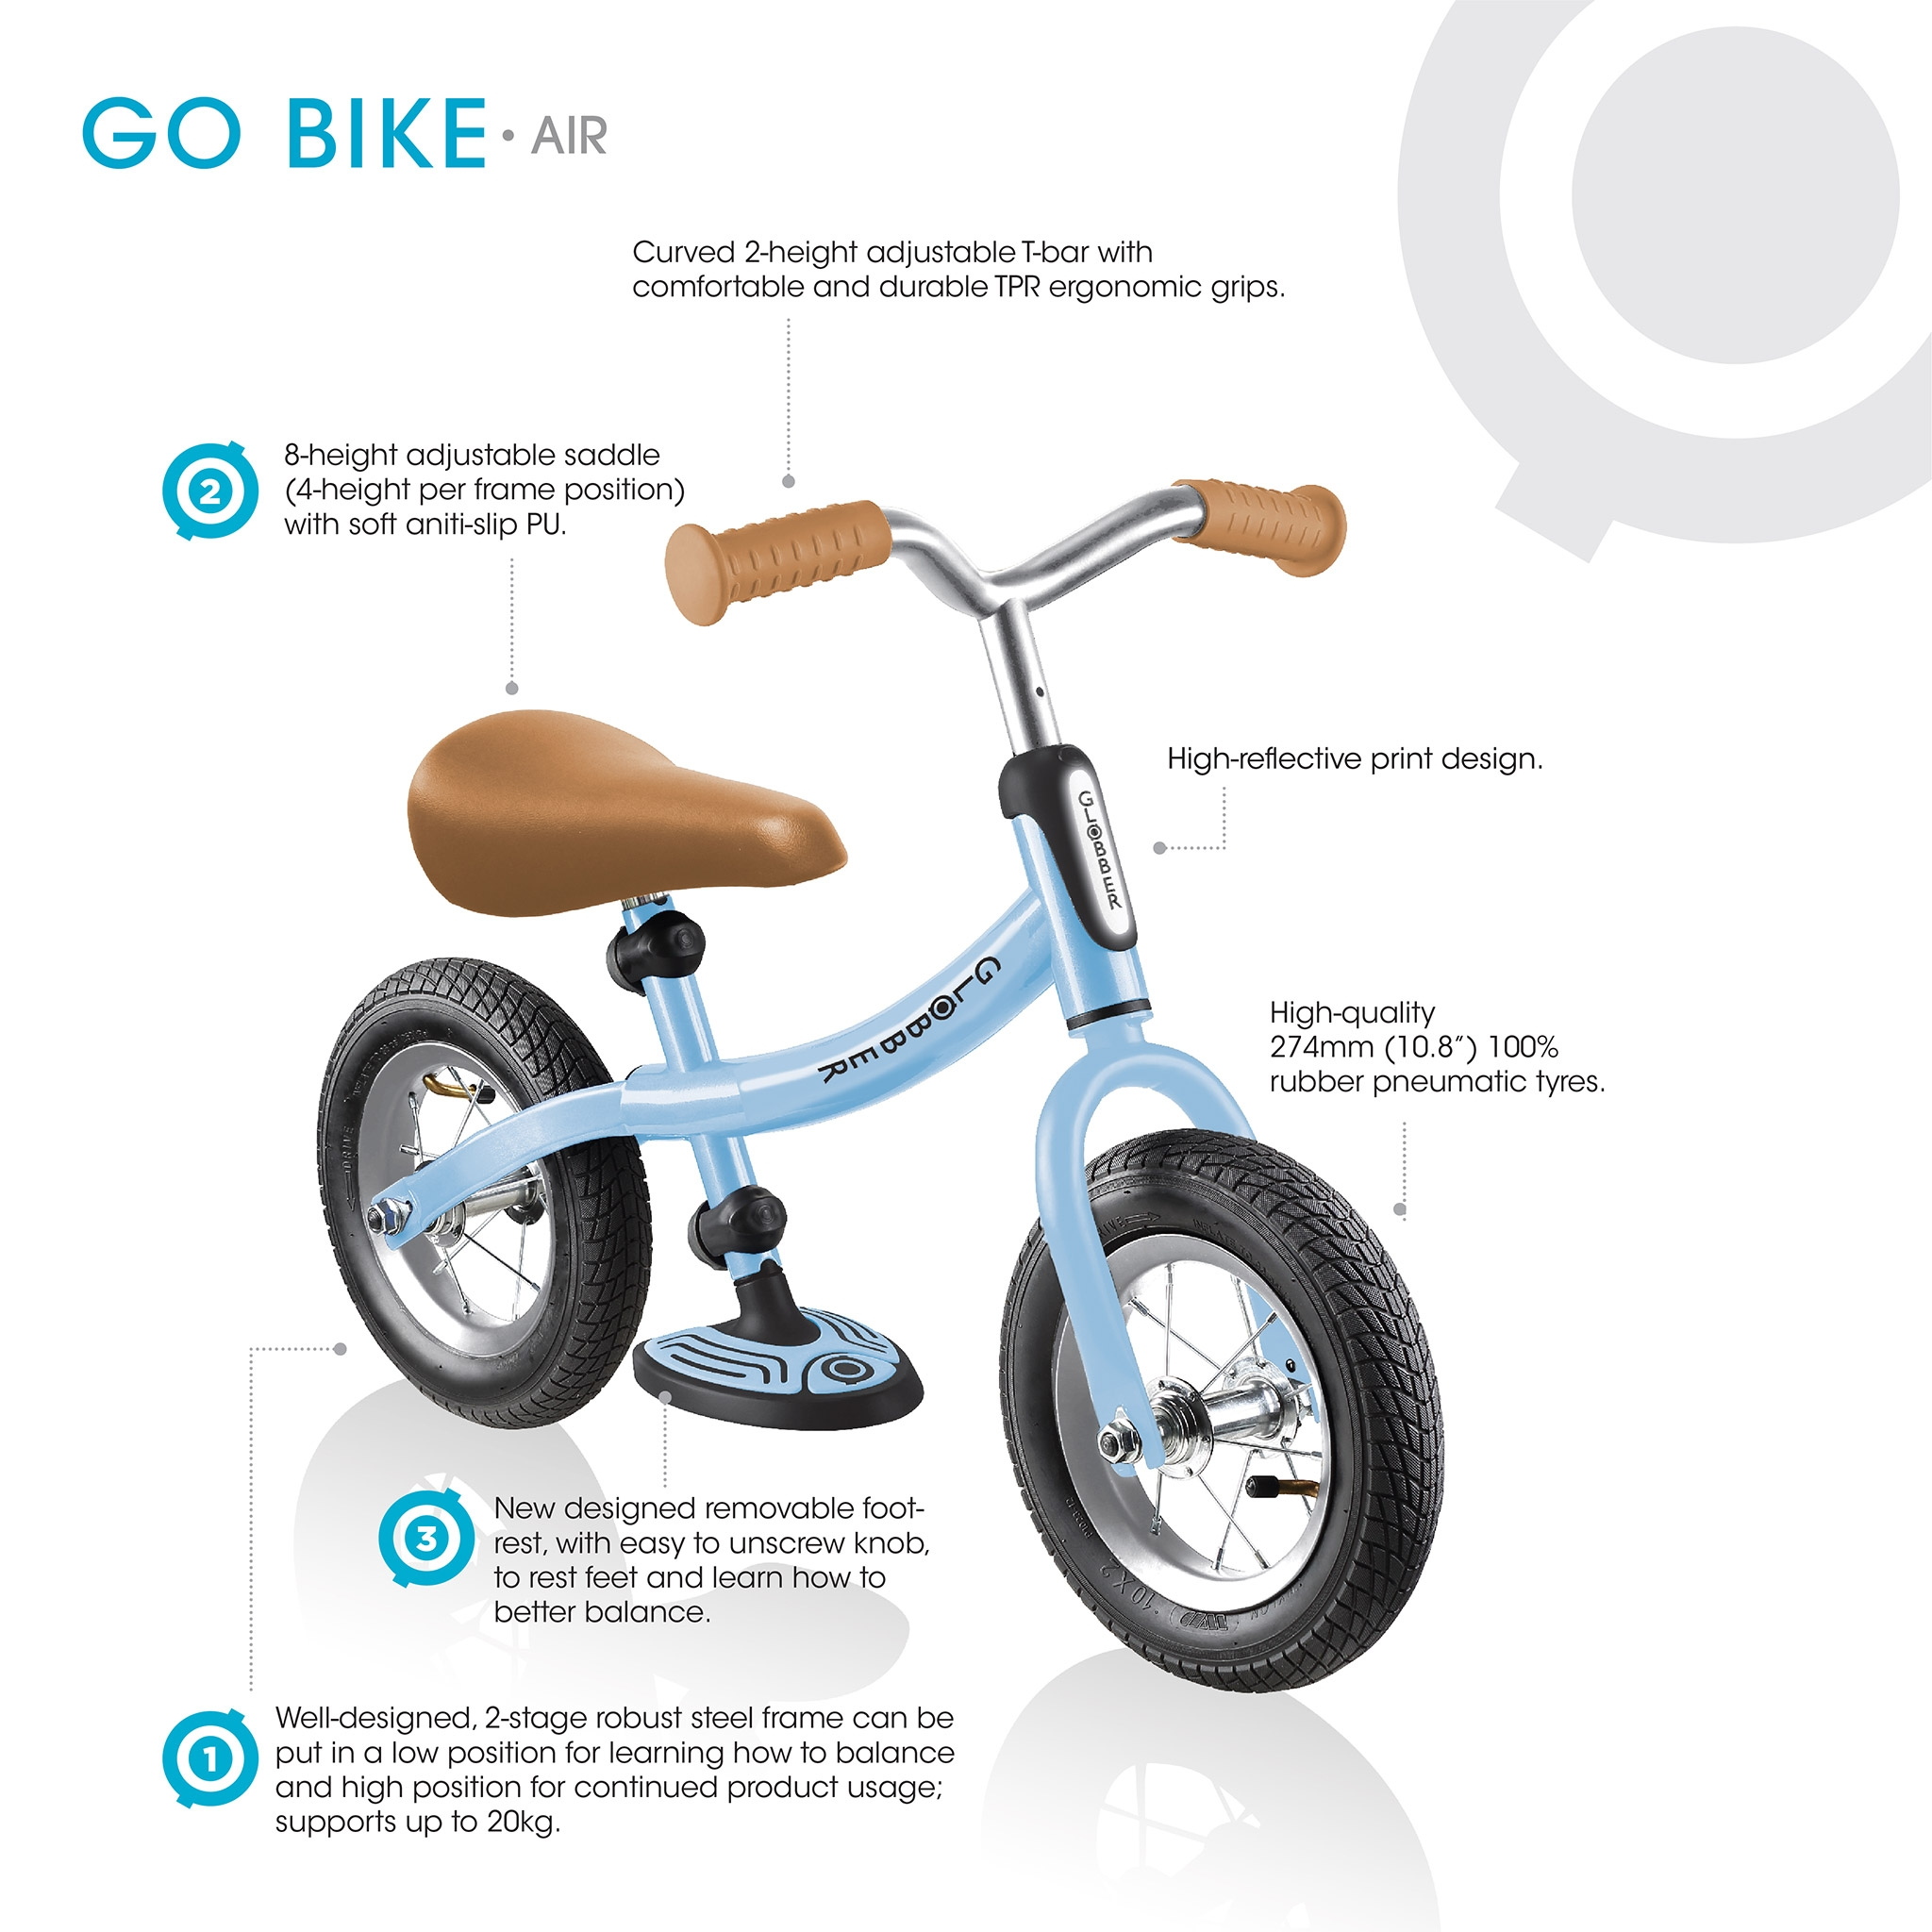 GO-BIKE-AIR-big-toddler-balance-bike-for-girls-and-boys-aged-3-to-6-with-rubber-air-tyres 3